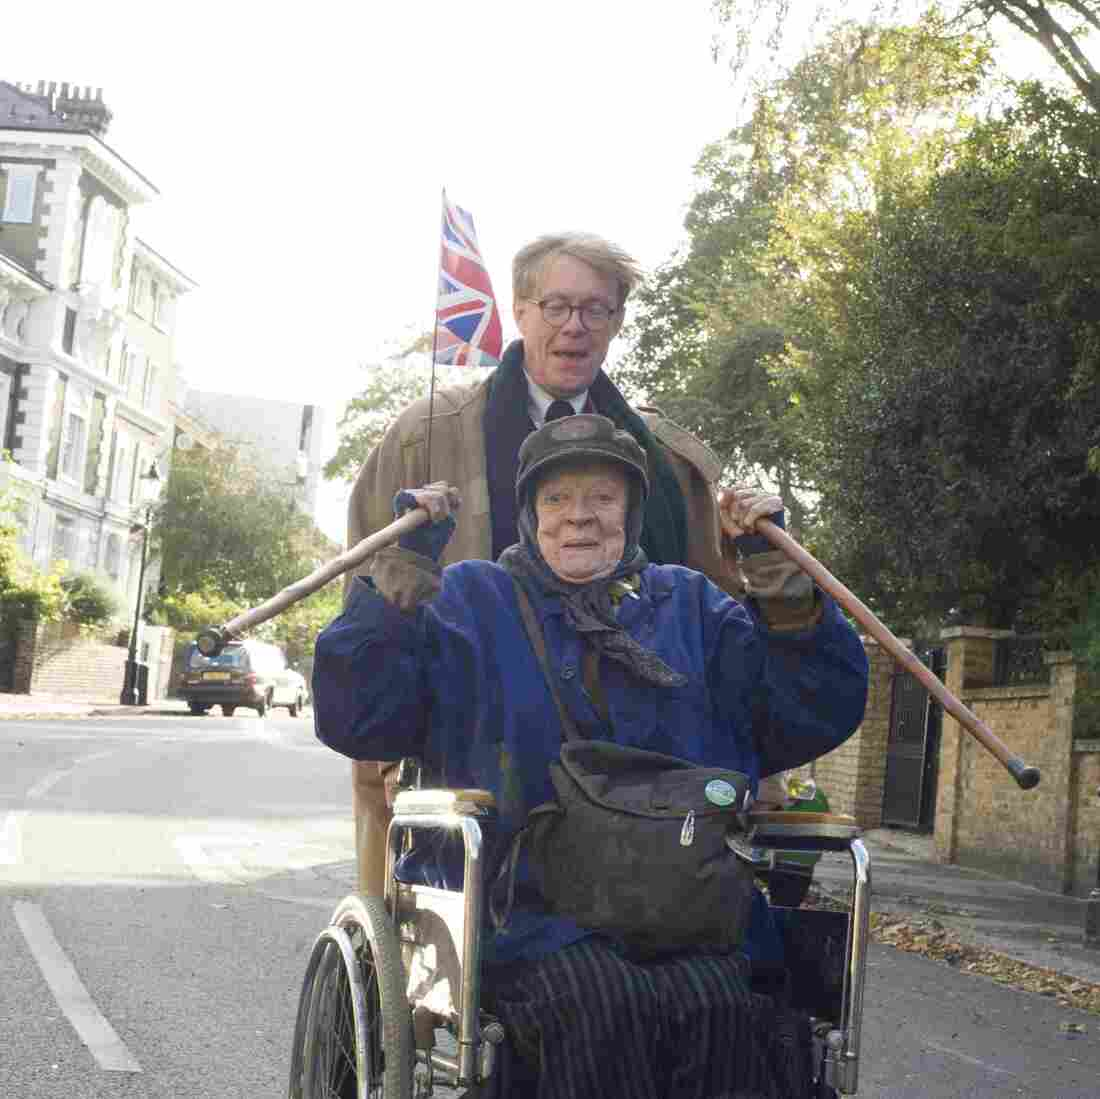 Alan Bennett (Alex Jennings) and Miss Shepherd (Maggie Smith) are both forceful personalities, but The Lady in the Van excels at bringing out undercurrents of frailty.